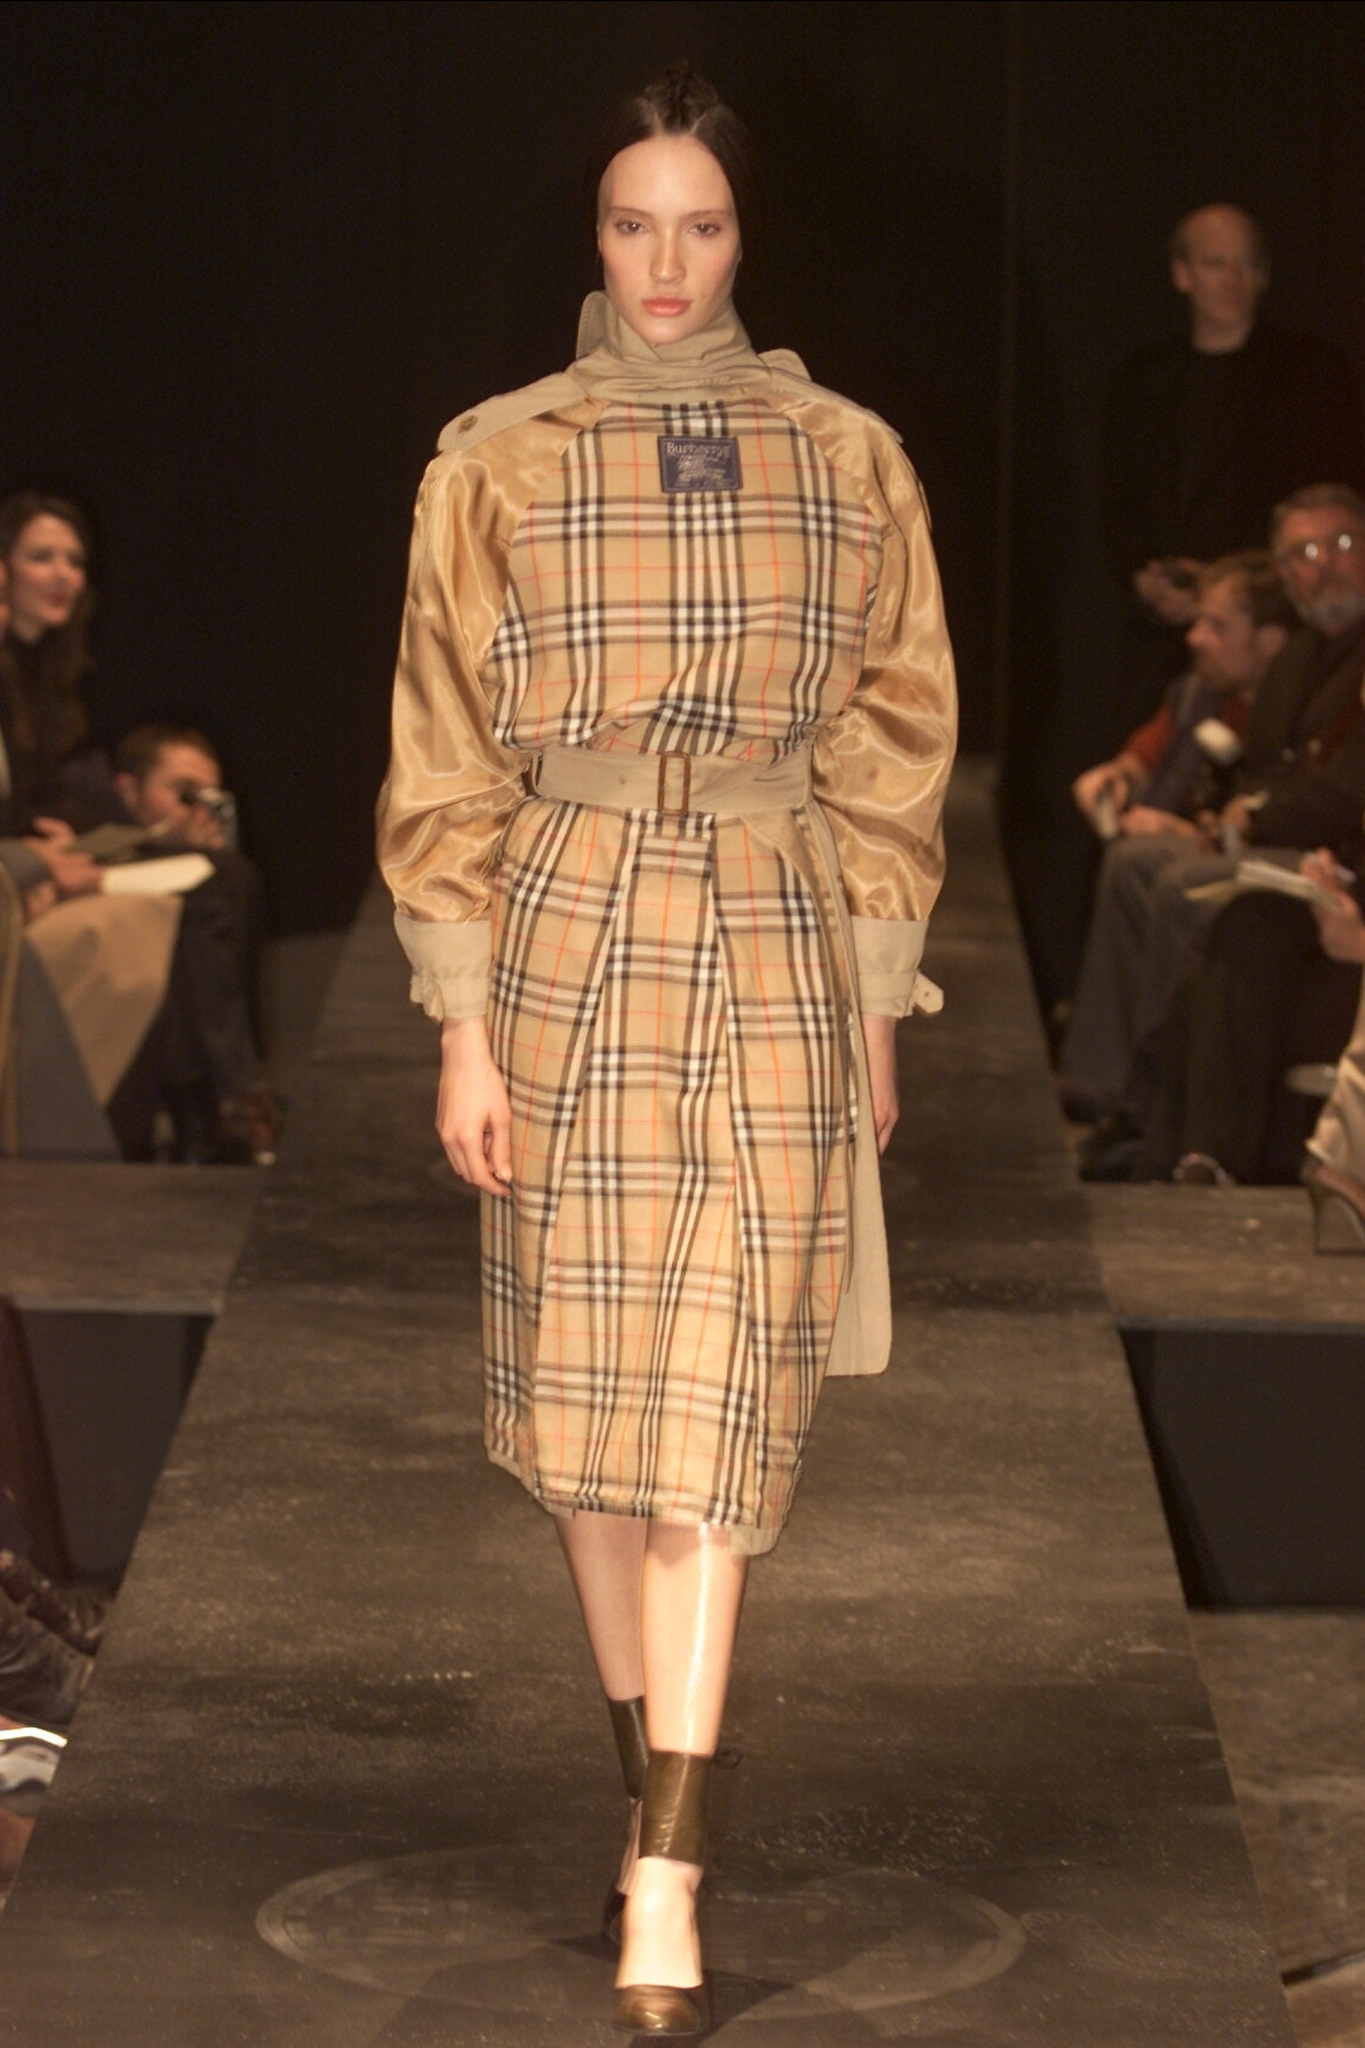 Miguel Adrover was sued by Burberry after reimagining its designs in 2000.